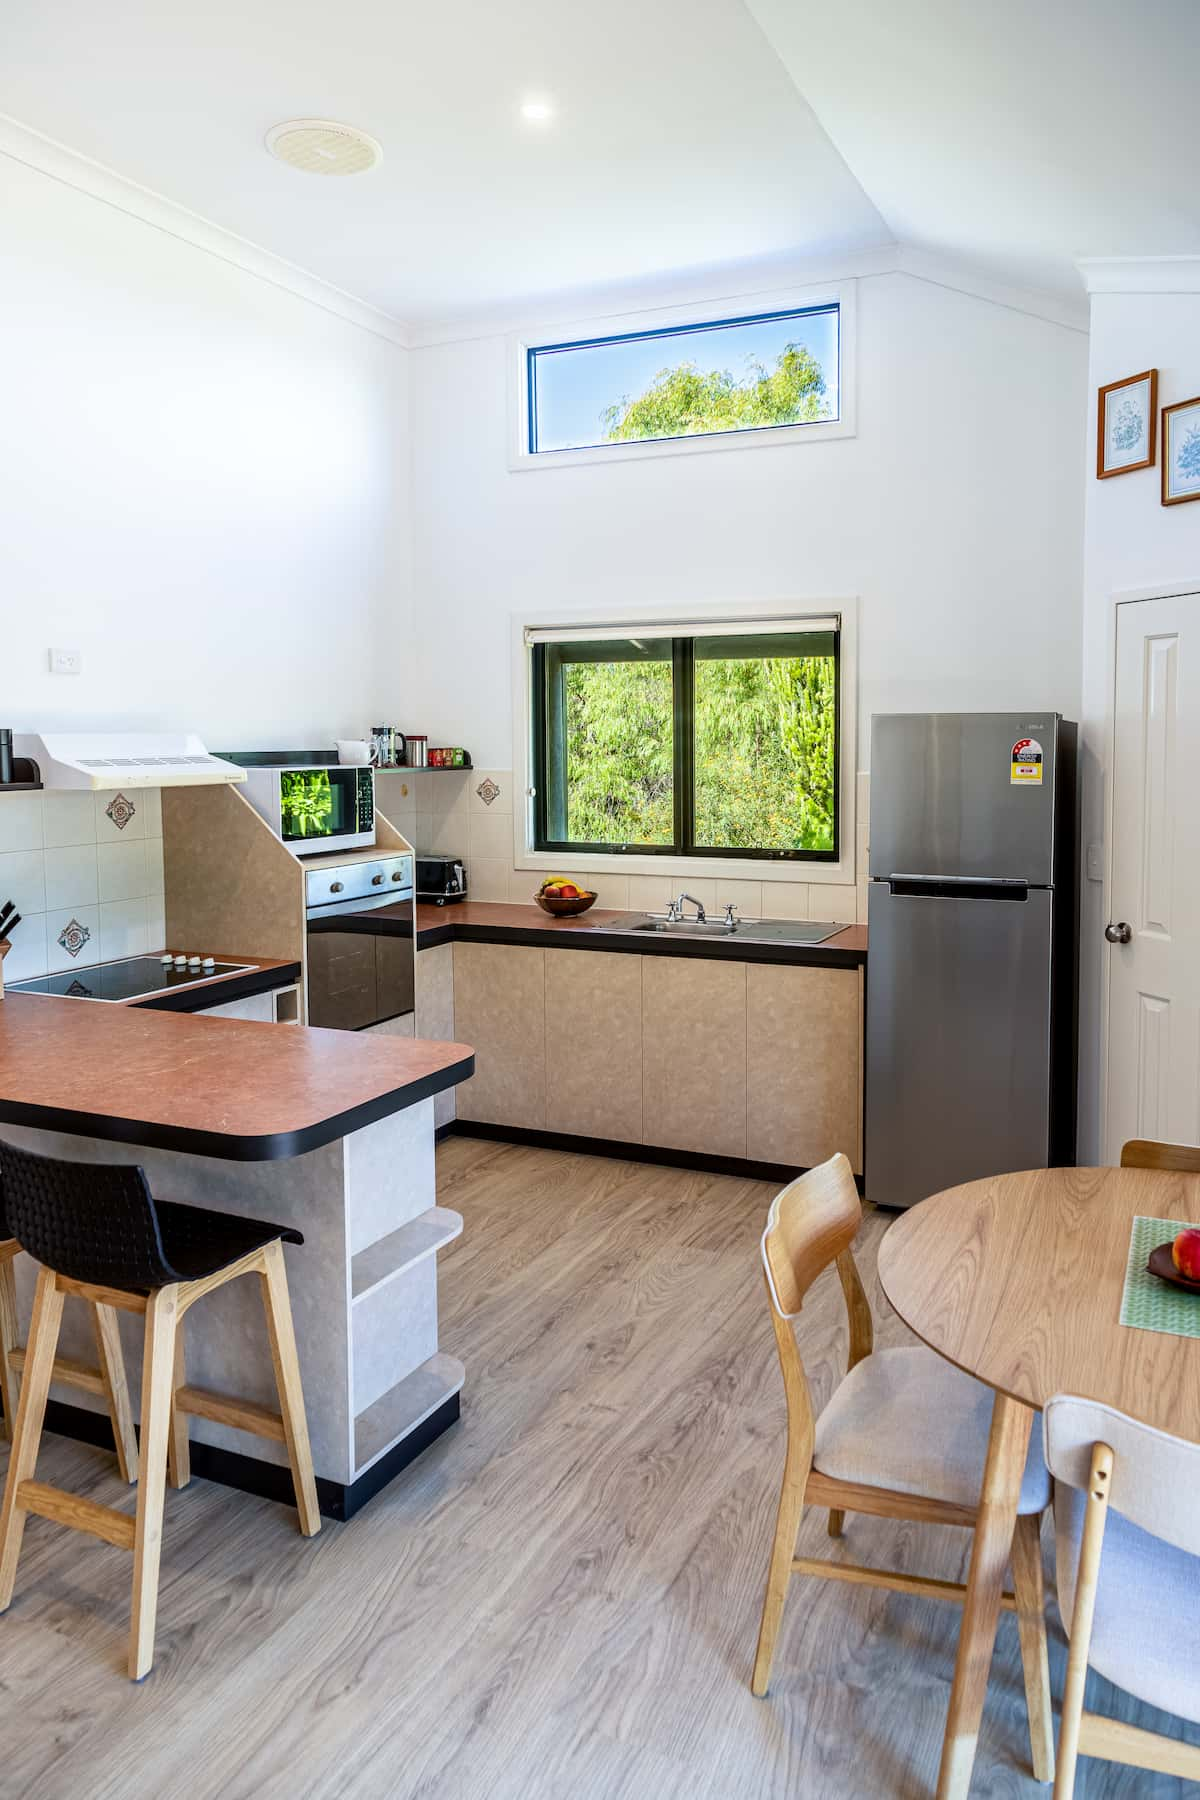 Gampi's kitchen and dining area